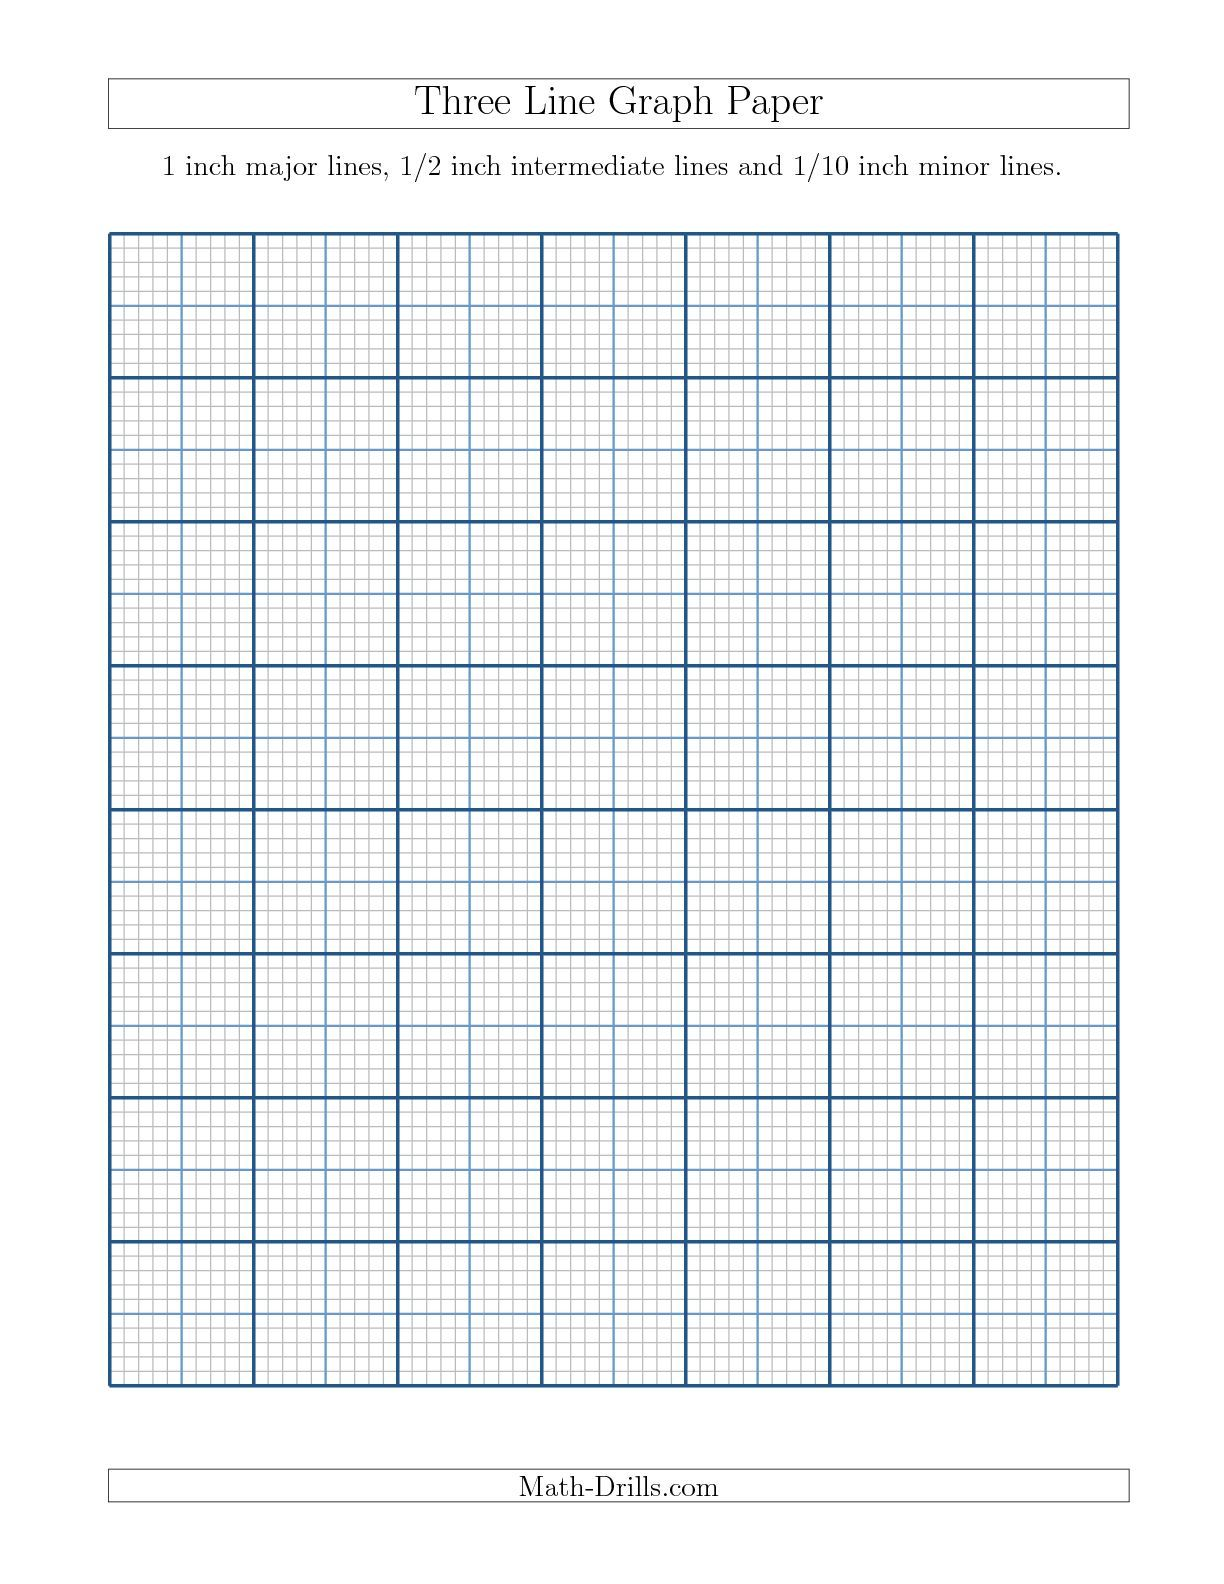 worksheet 10 By 10 Graph Paper new 2015 09 17 three line graph paper with 1 inch major lines lines